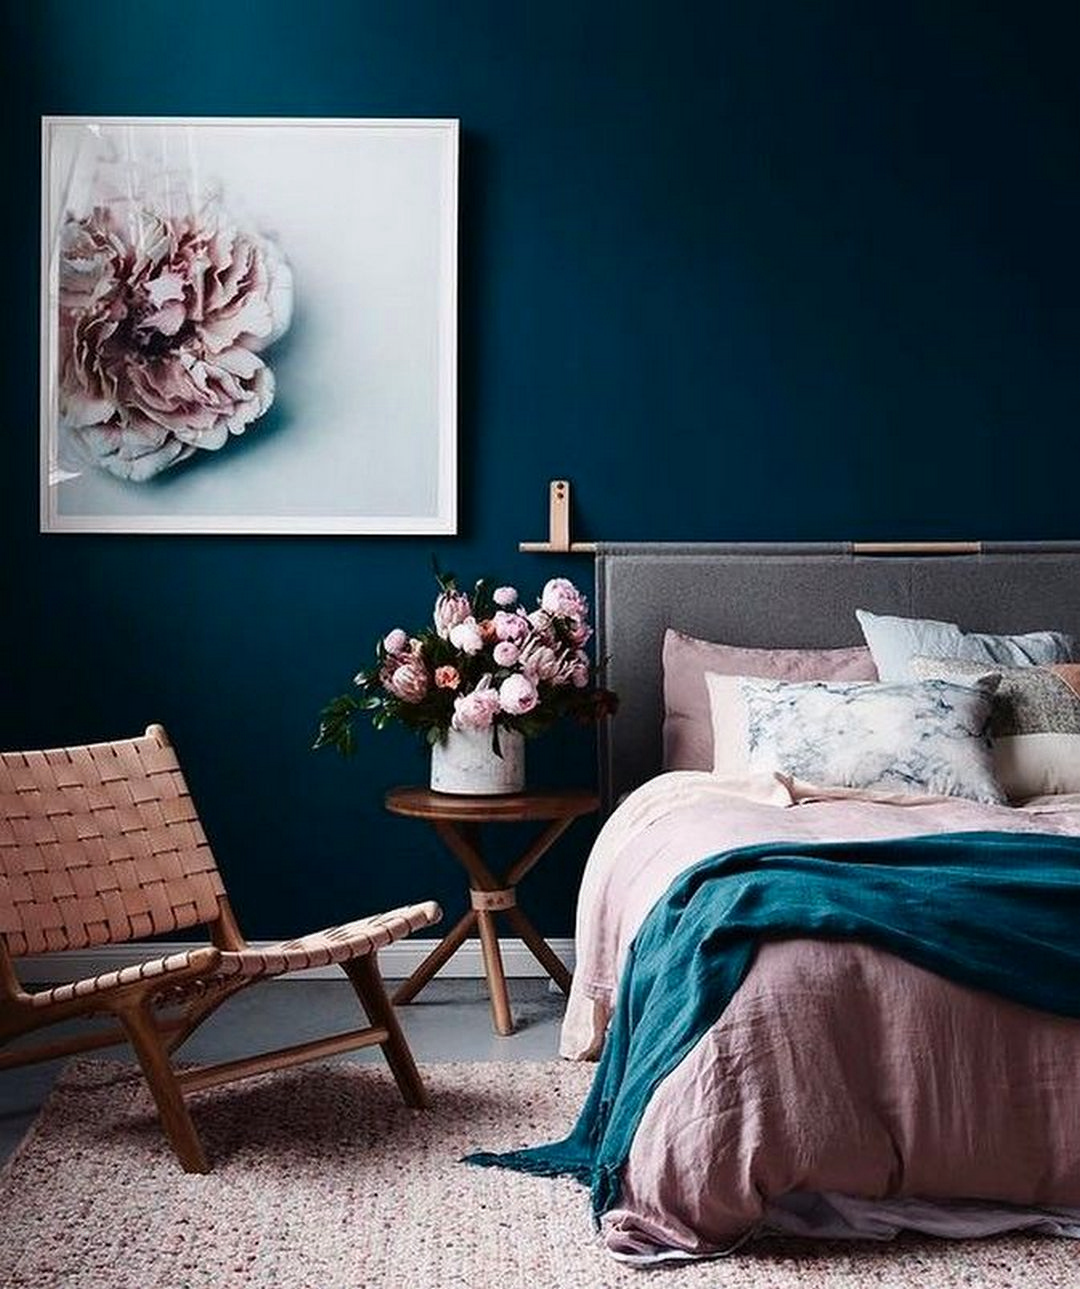 58 Pretty Blue Bedroom Decoration Inspirations | Gorgeous Interior on navy blue bathroom ideas, navy blue room ideas, grey and beige bedroom ideas, navy blue gray bedroom, navy blue bedroom decoration, navy blue bedroom vintage, navy blue bedroom color schemes, navy blue and yellow bedroom, navy and gray bedroom, navy blue furniture ideas, navy blue chairs ideas, navy blue bedroom sets, navy blue and green bedroom, navy blue paint ideas, navy blue bedroom rug, white and blue living room ideas, navy blue walls, navy and tan bedroom, navy blue master bedroom, navy and pink master bedroom,